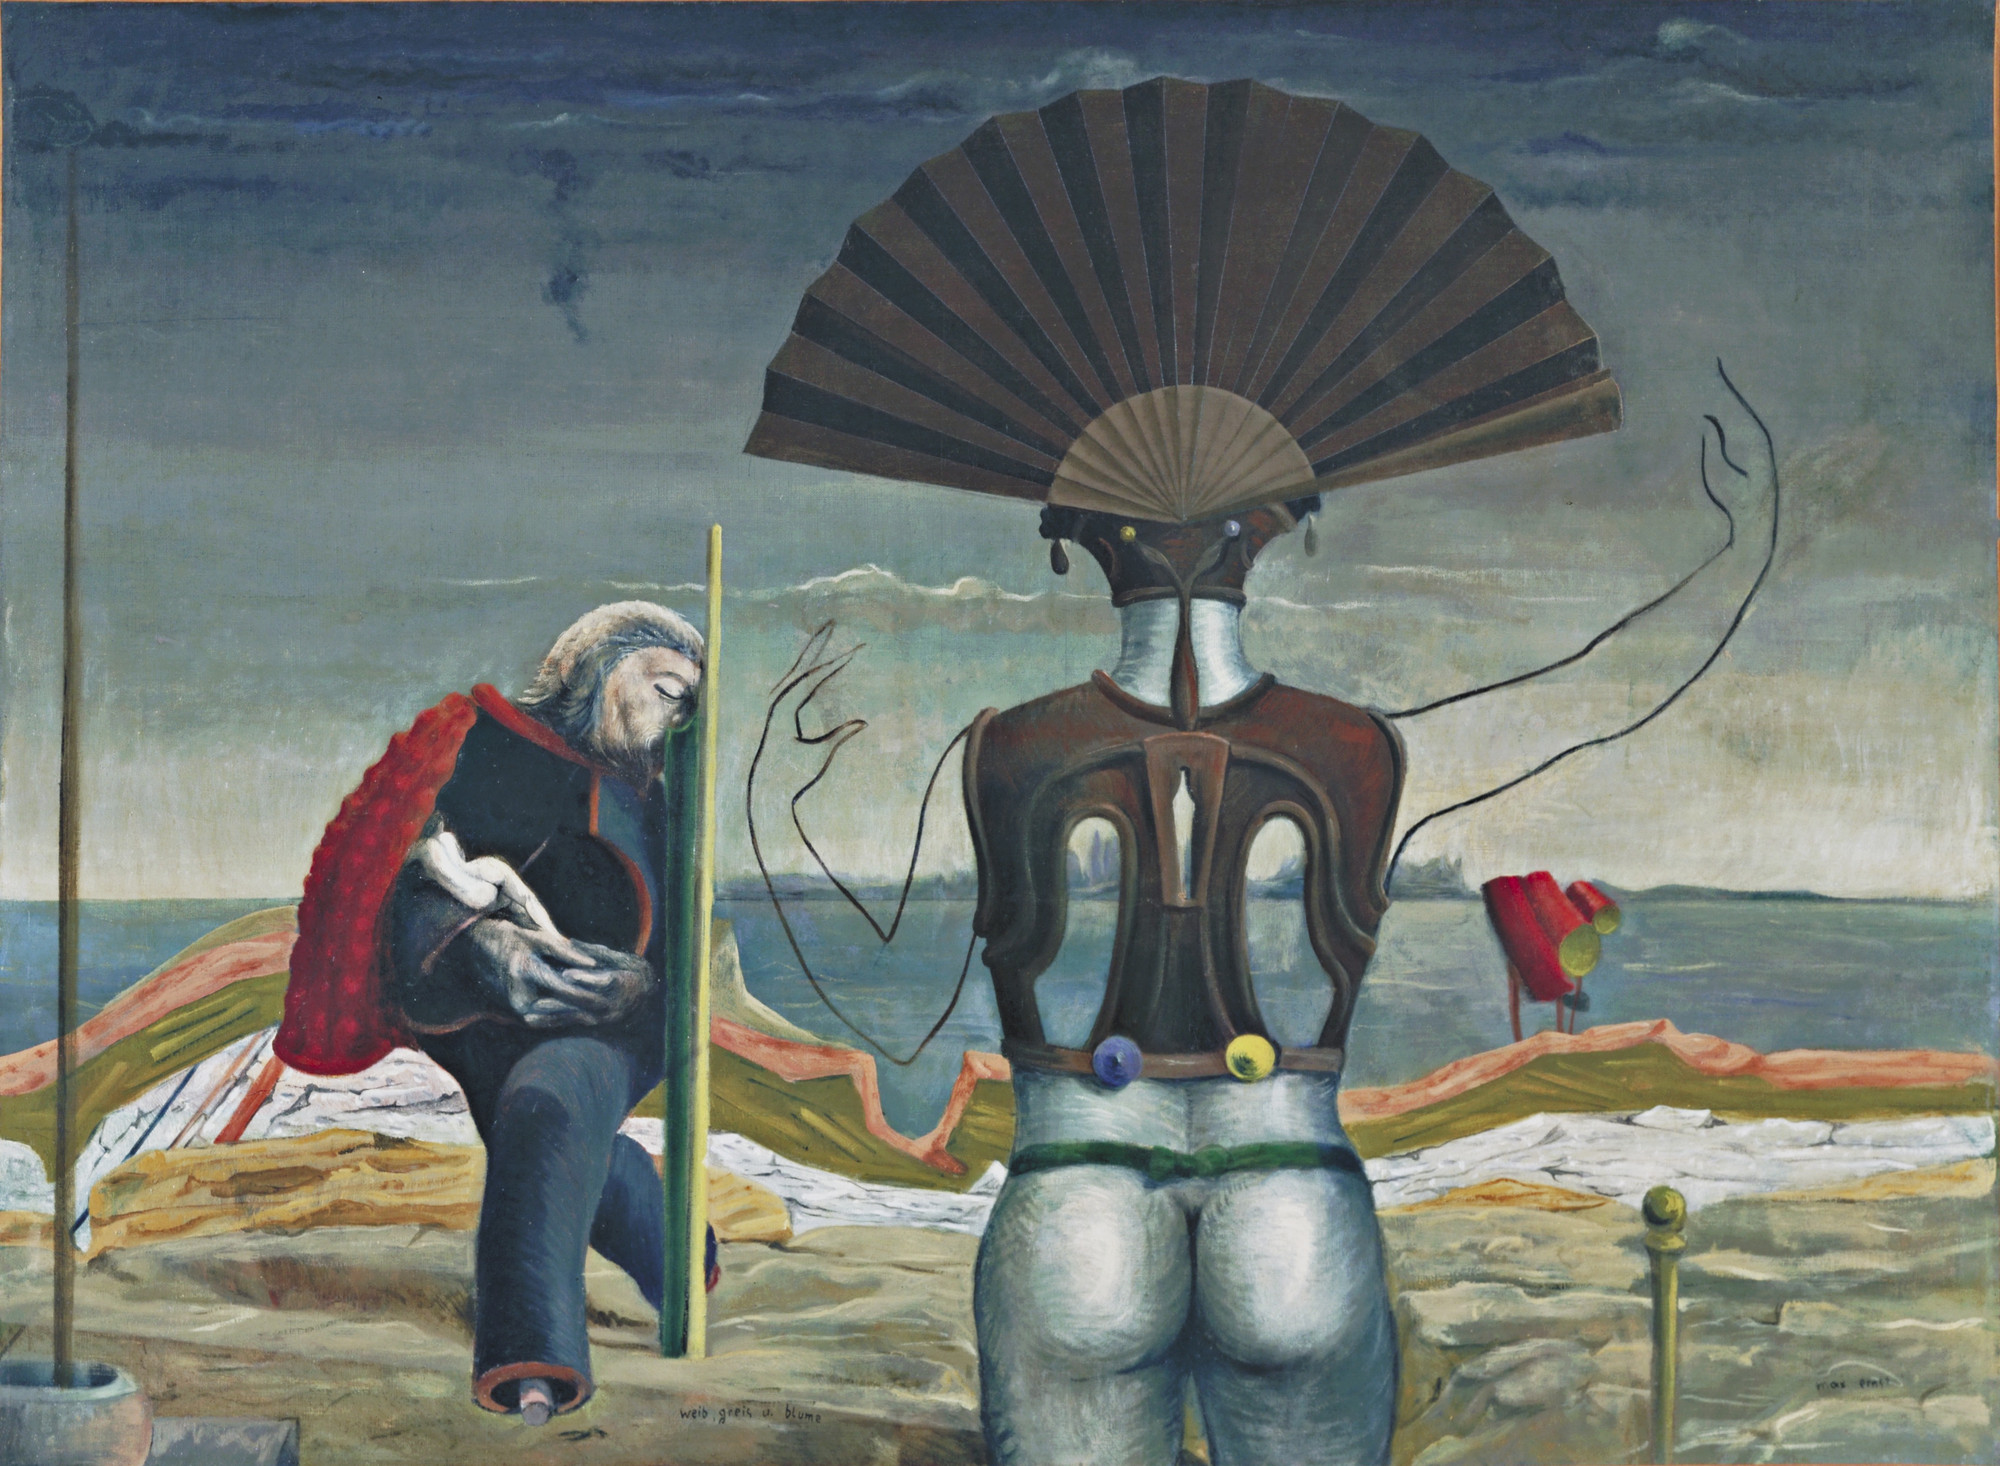 Max Ernst. Woman, Old Man, and Flower (Weib, Greis und Blume). Paris 1923, Eaubonne 1924